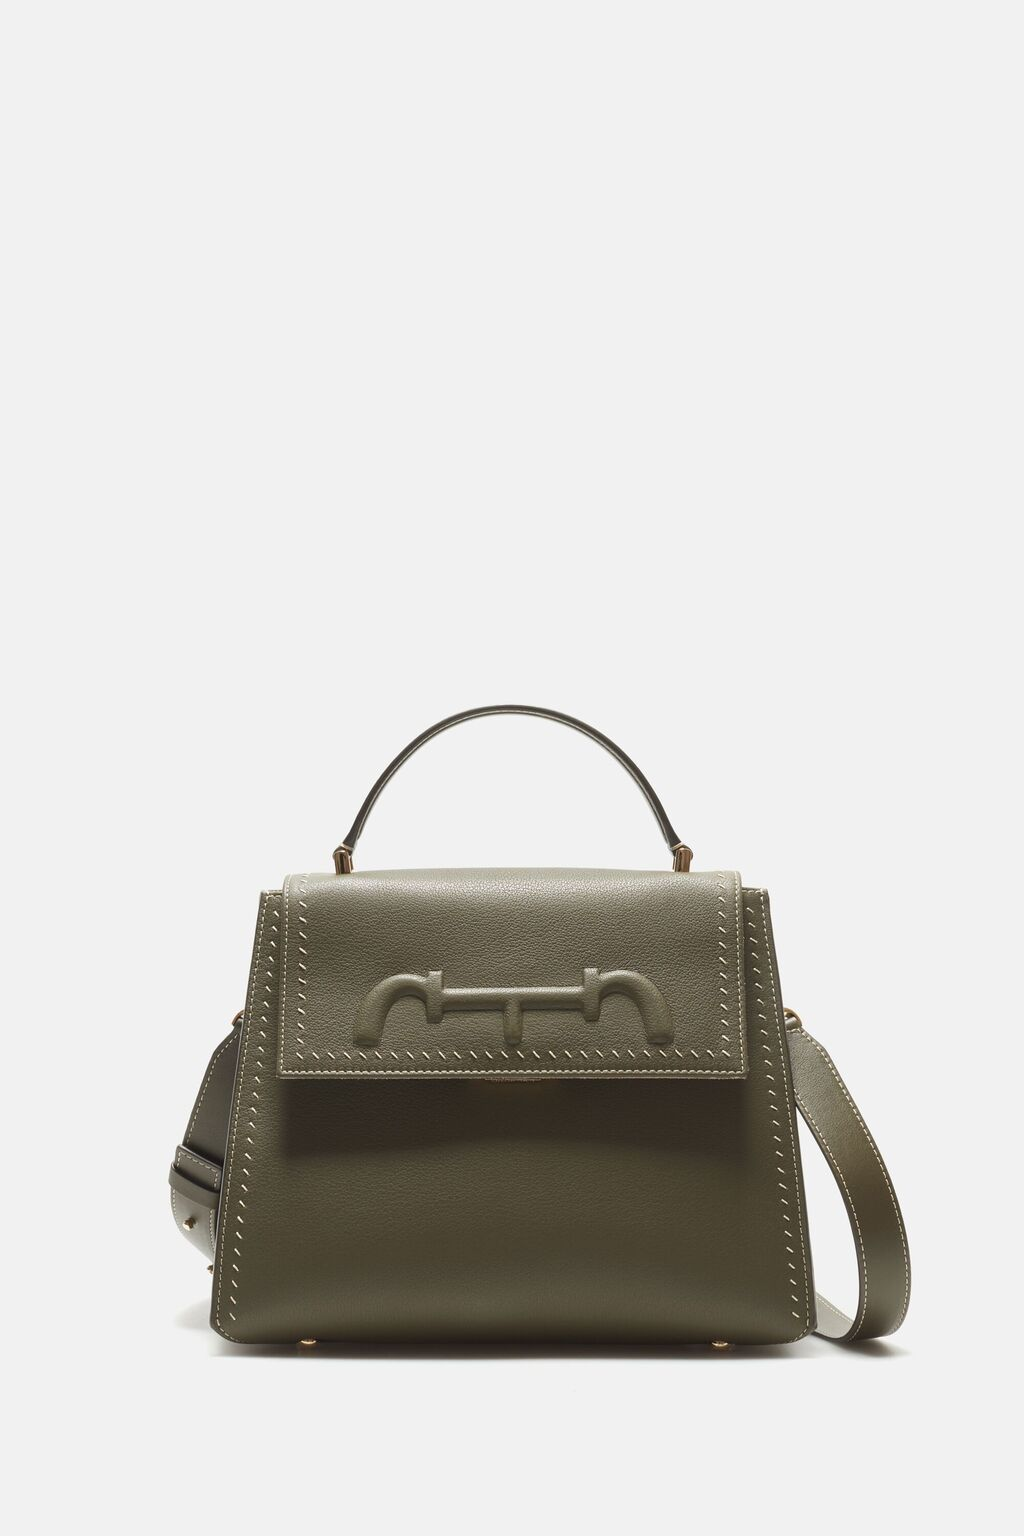 Doma Insignia Satchel | Medium shoulder bag